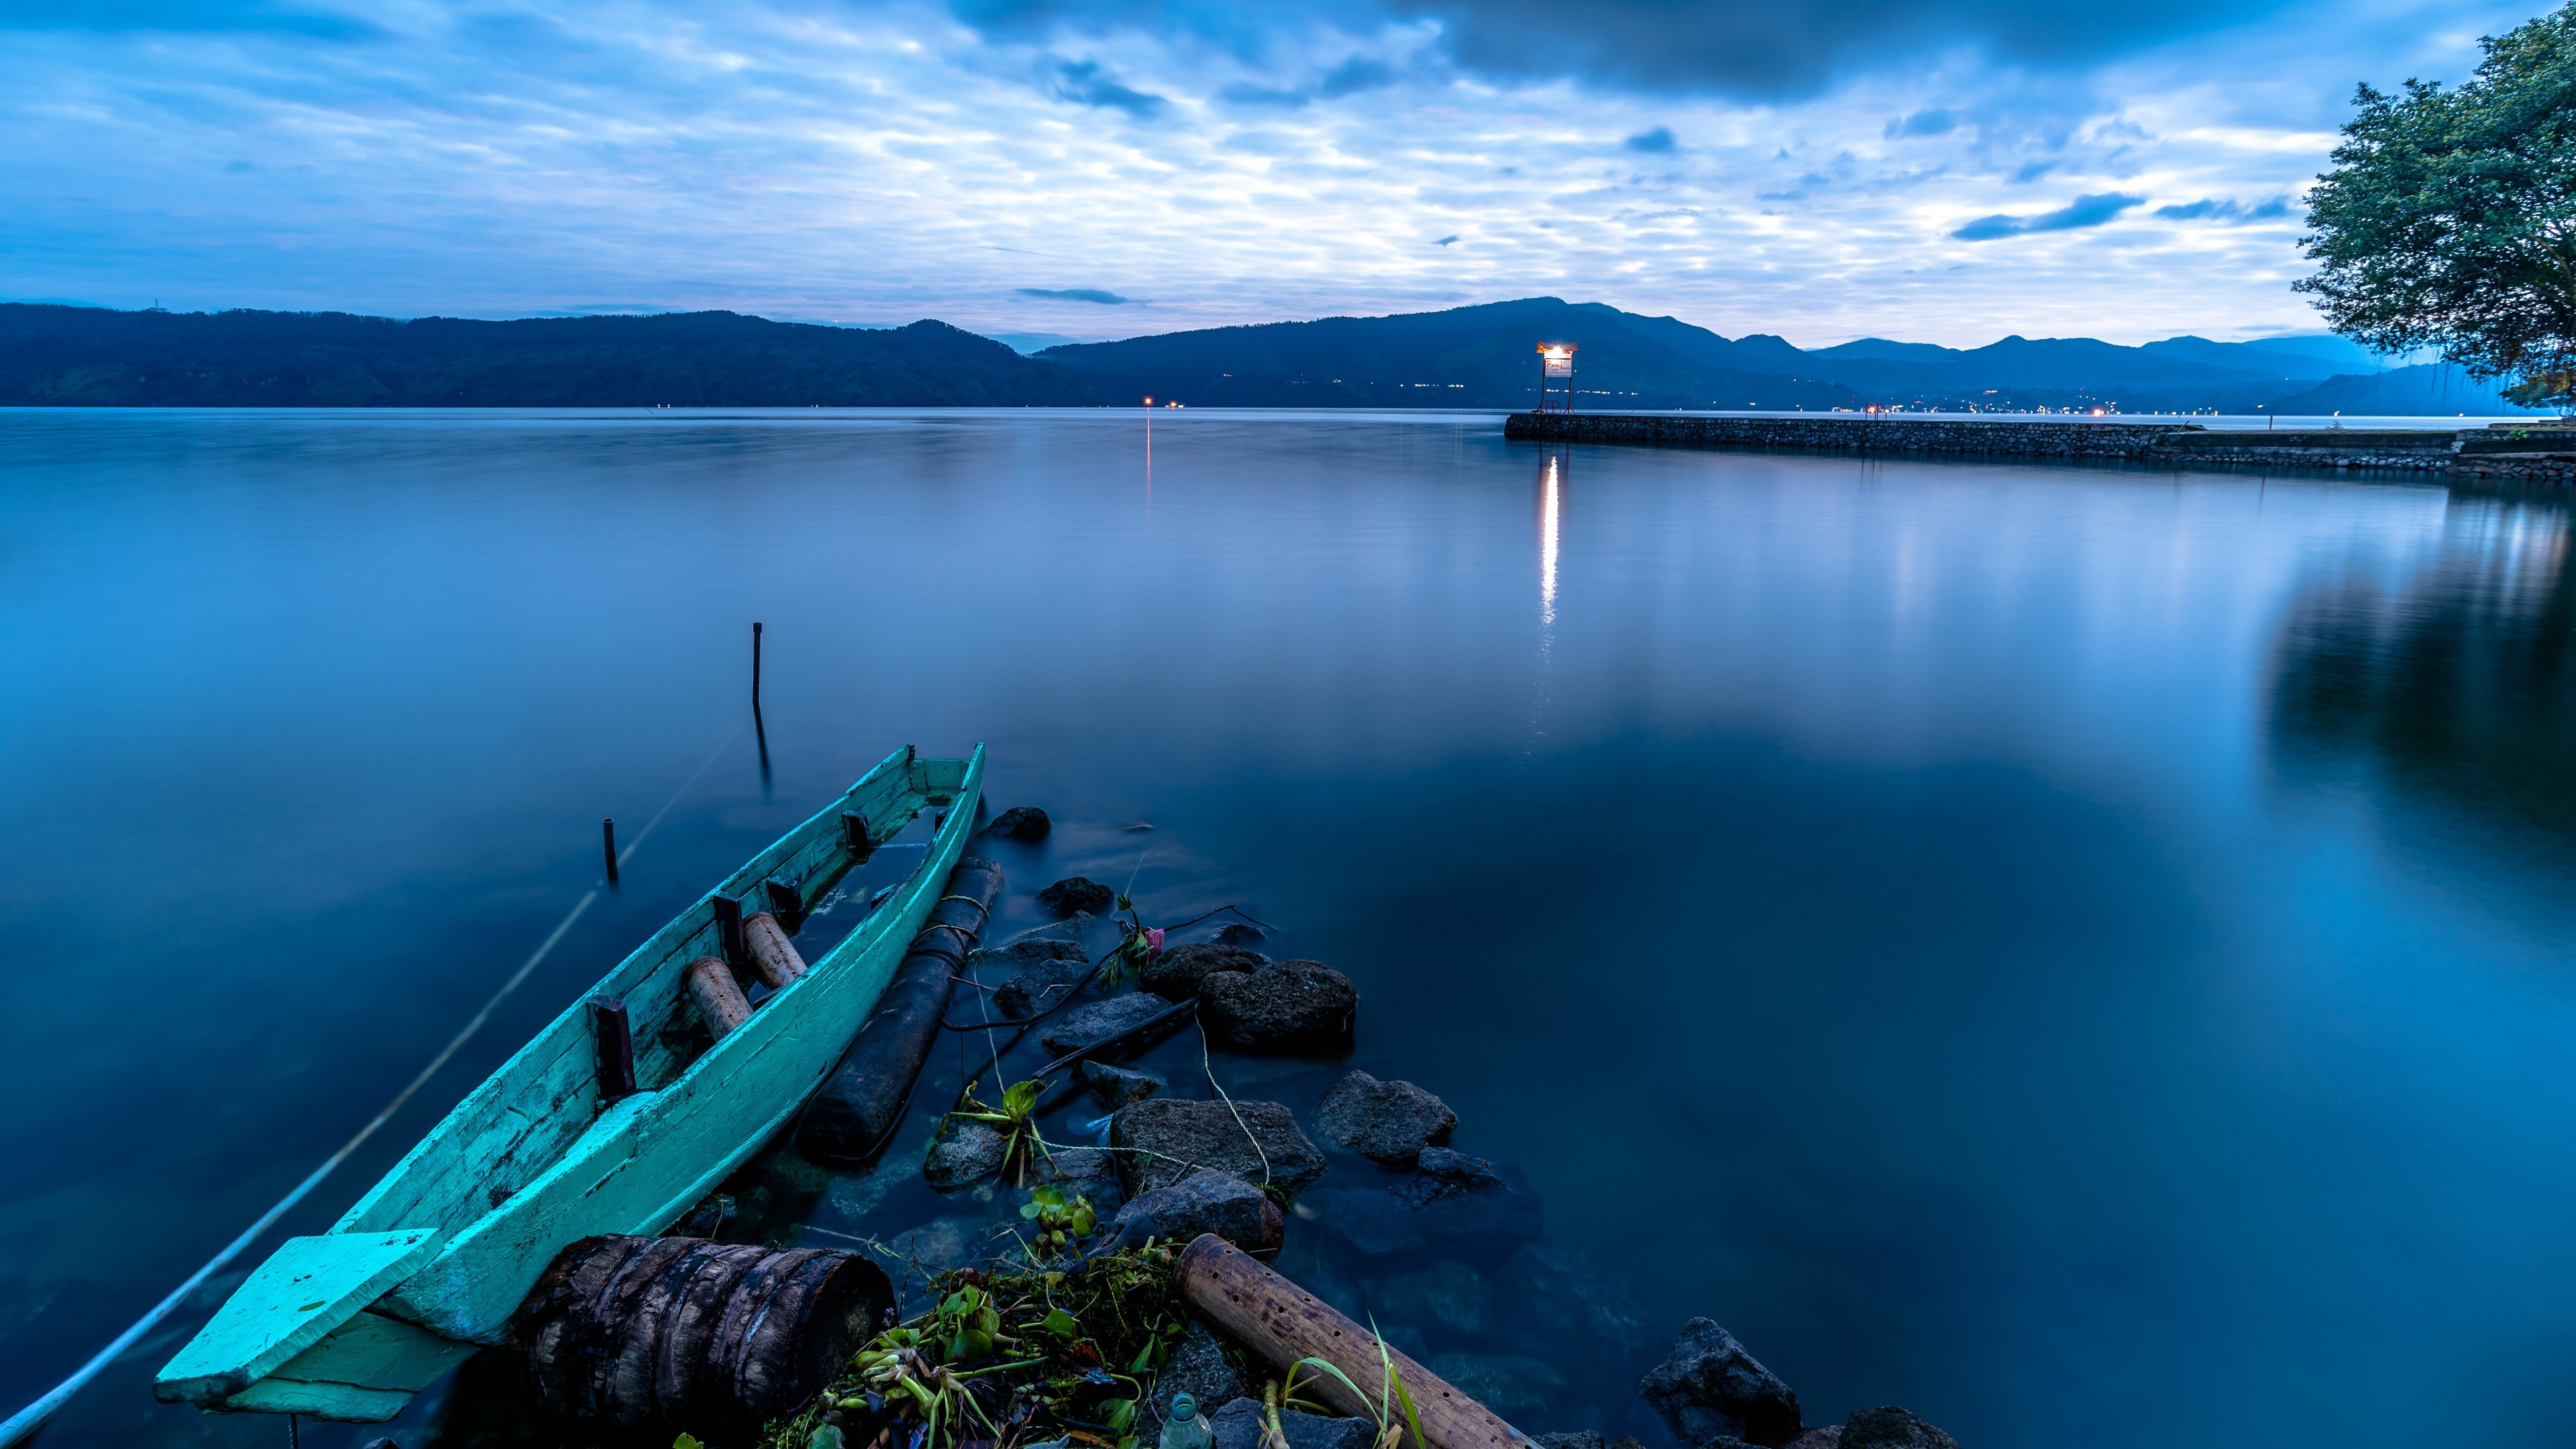 Lake Toba (Danau Toba) from Samosir Island wallpaper